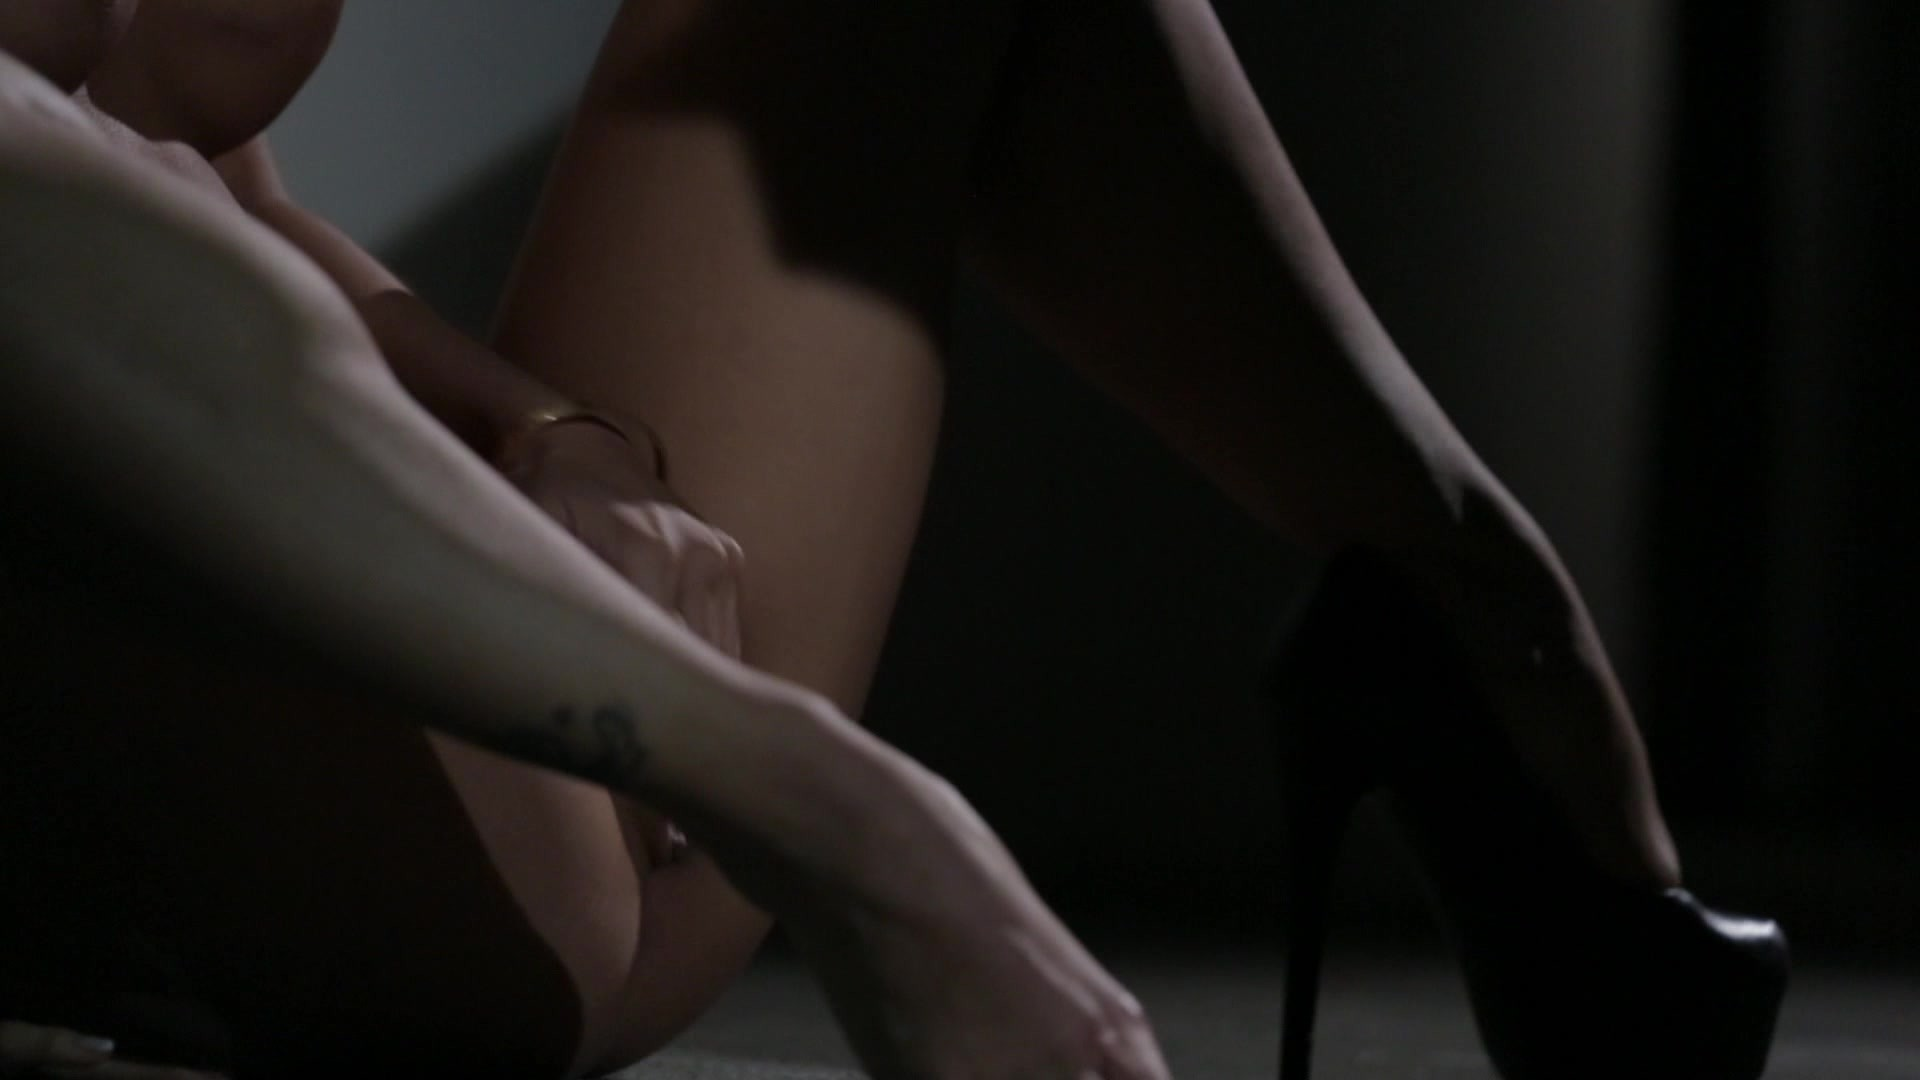 Scene with Asa Akira - image 16 out of 19